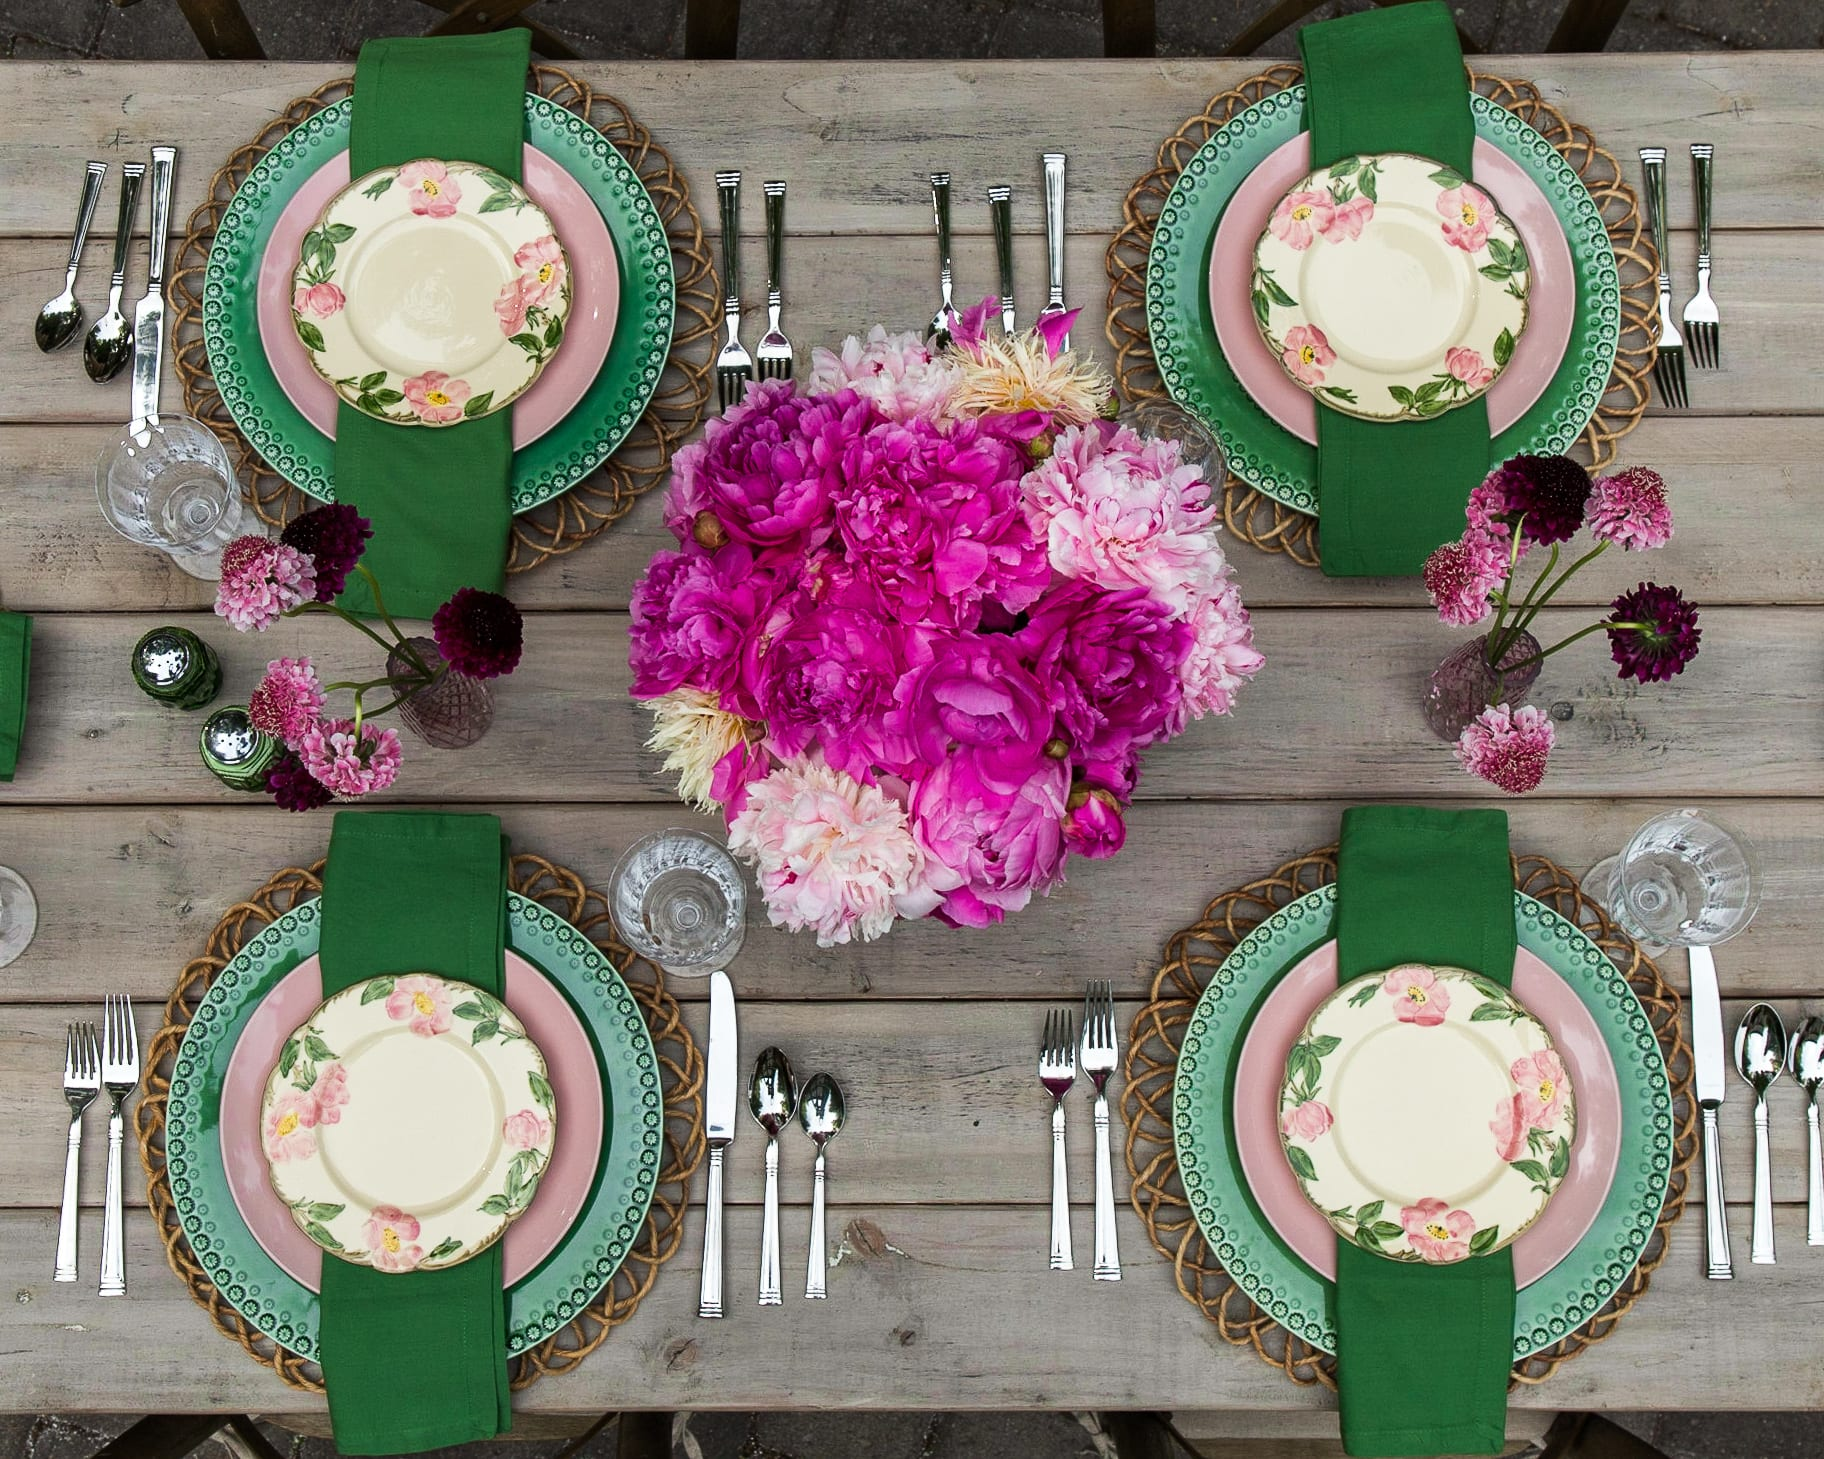 pink peonies summertime tablescape desert rose dishes